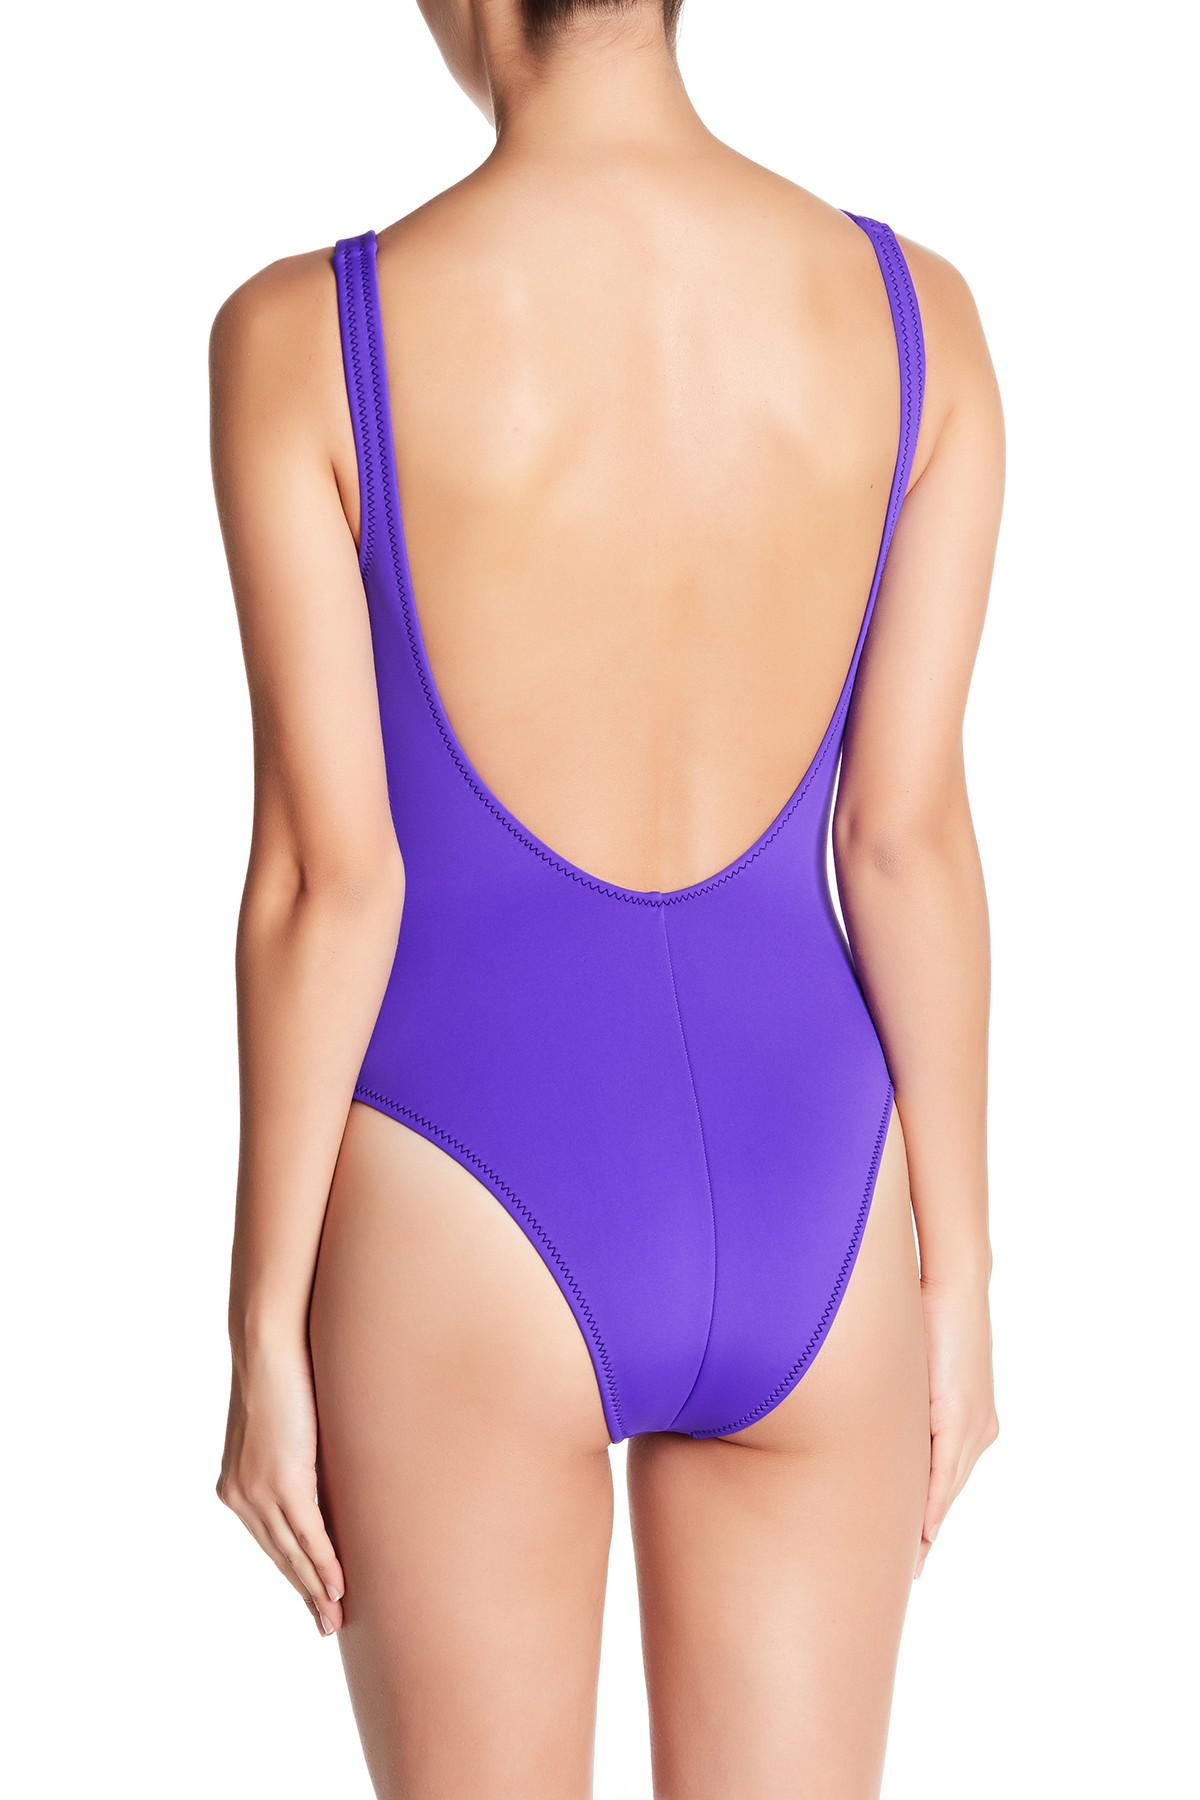 5d398e746b4 Body Glove 80s Throwback Time After Time One-piece Swimsuit in ...